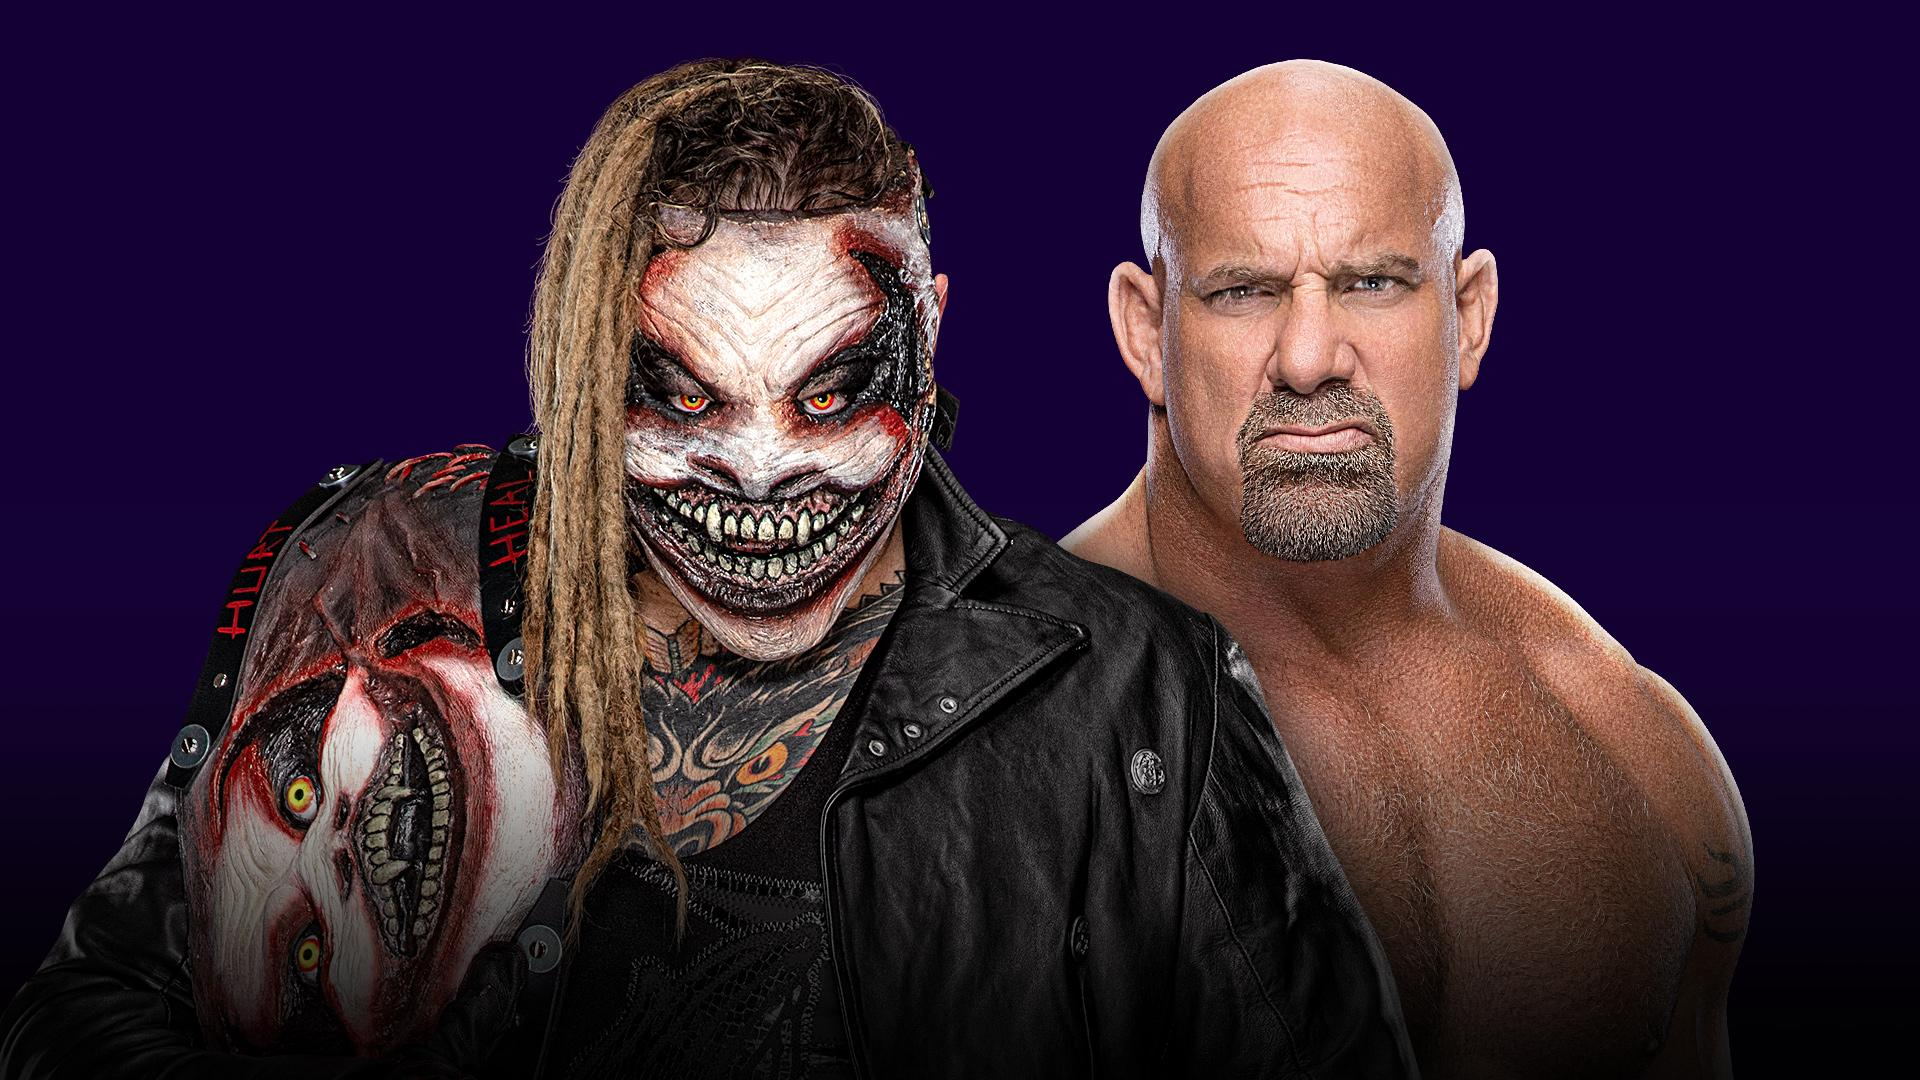 Goldbergs Halloween Special 2020 Smackdown Live preview (Vancouver), 02/12/2020: Is Goldberg next?